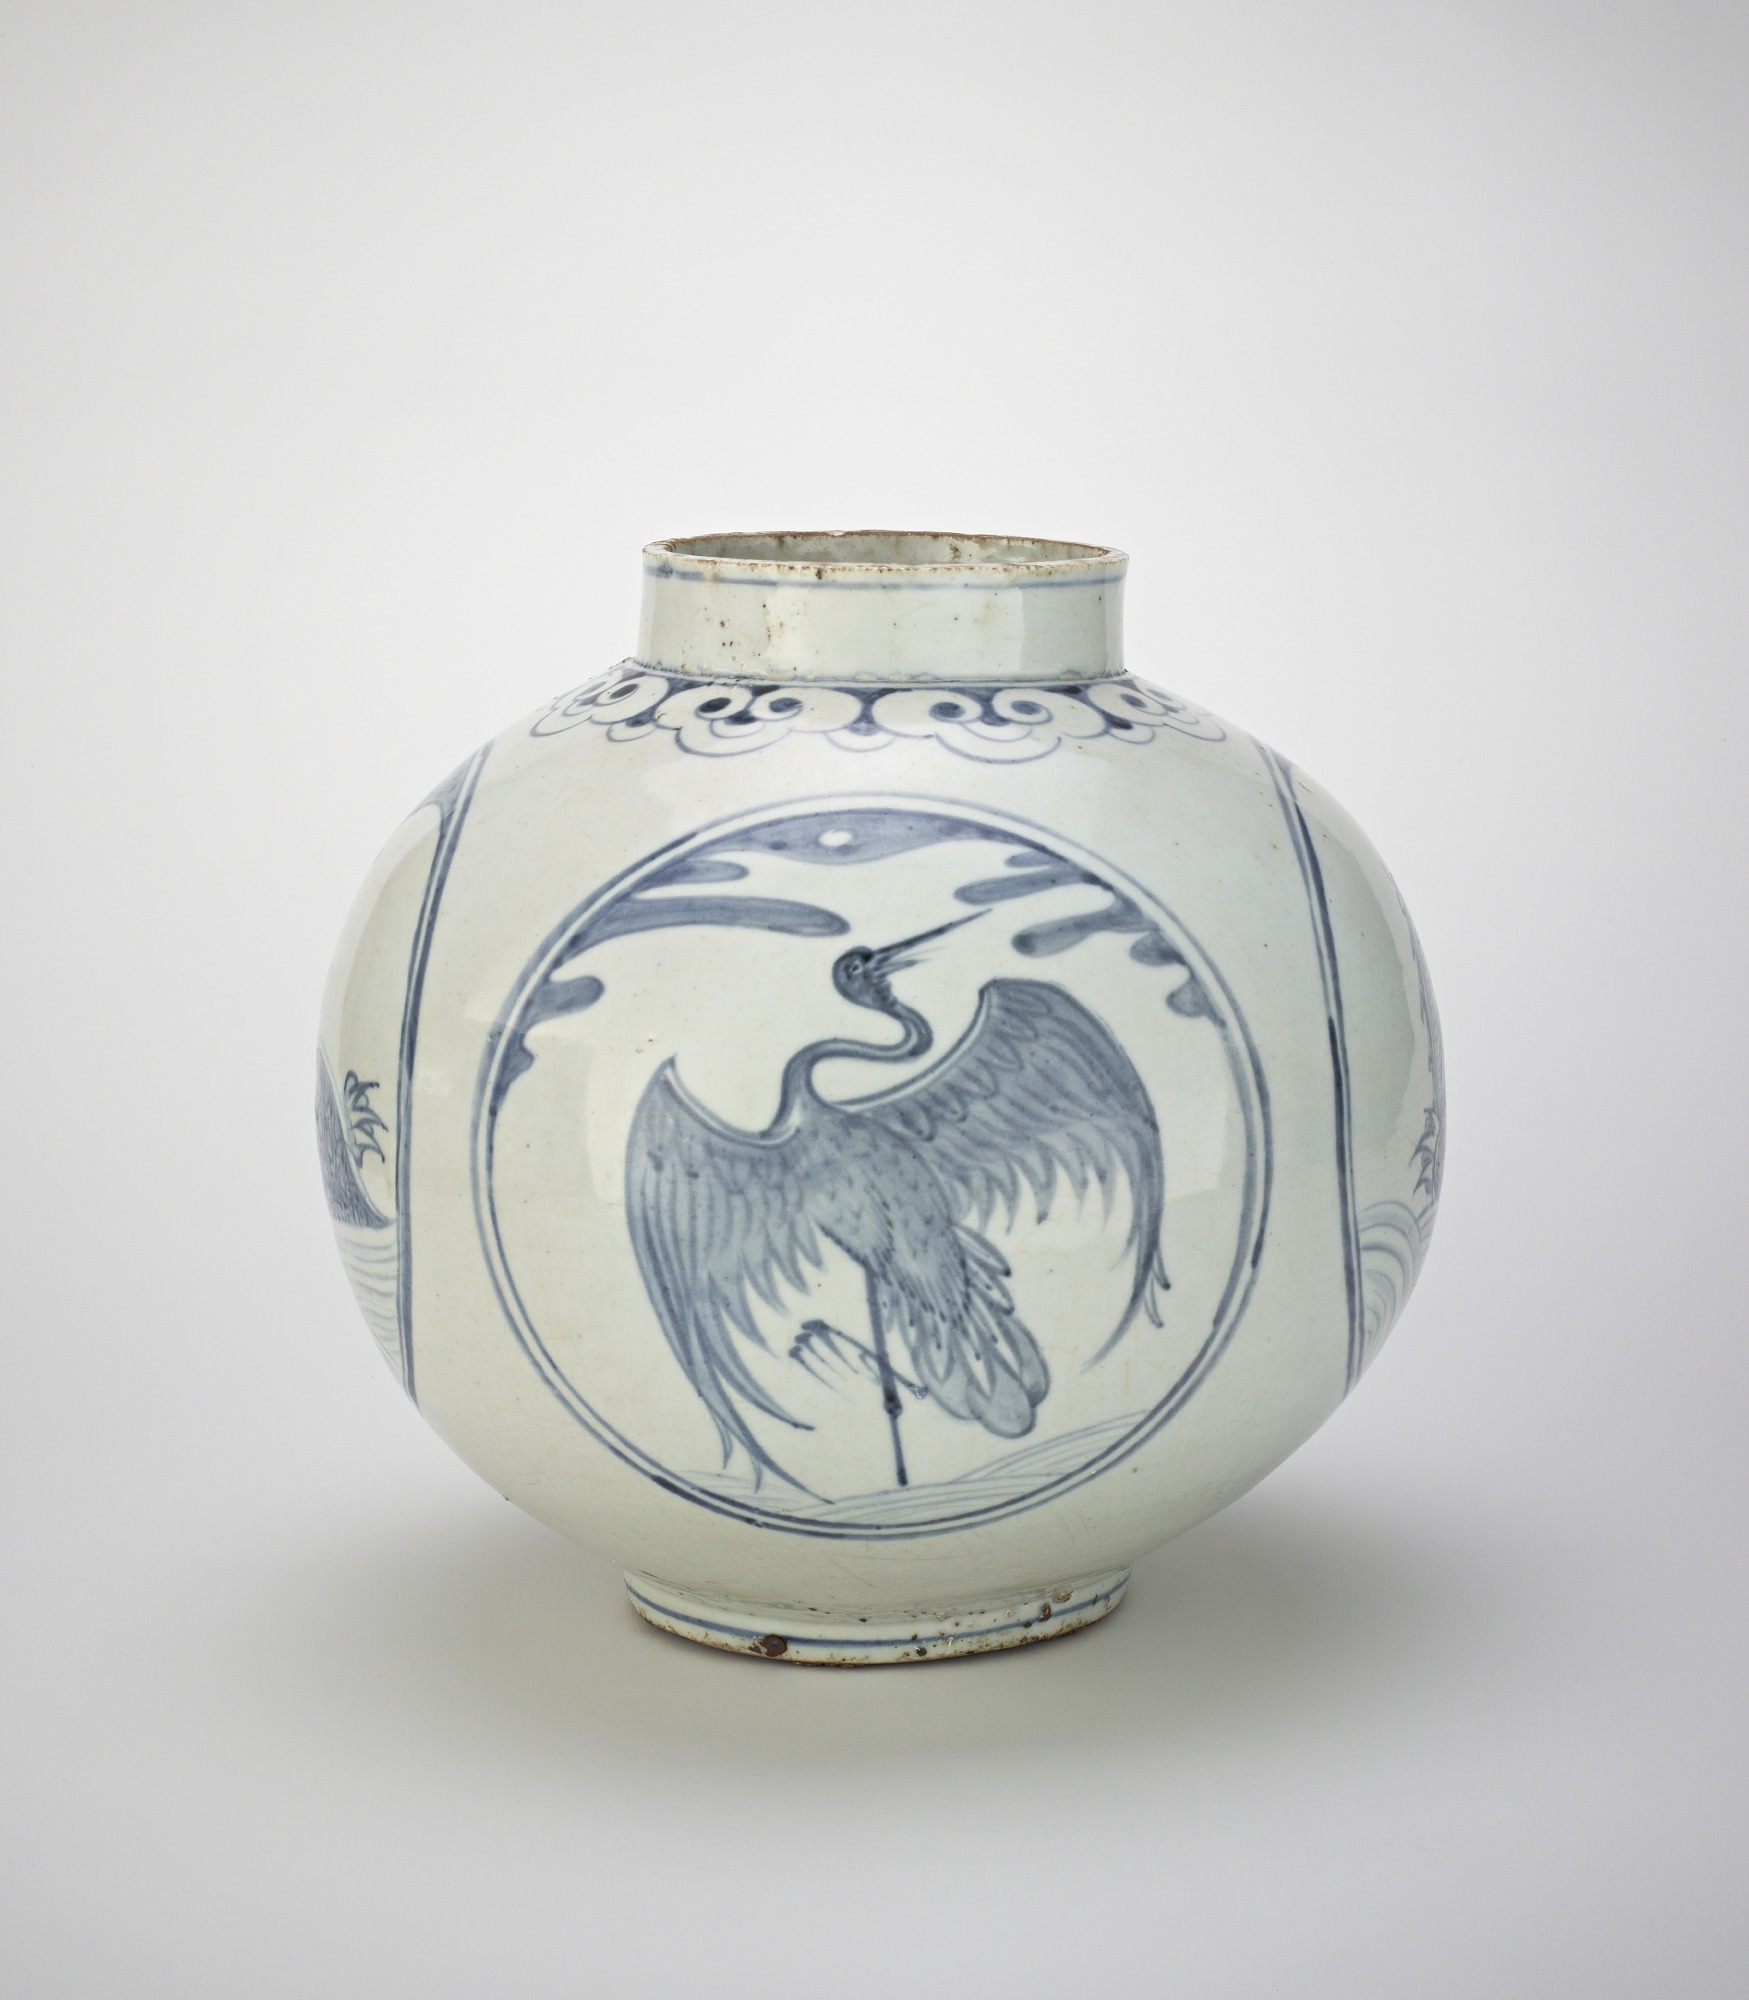 Jar with designs of tortoises and cranes, profile